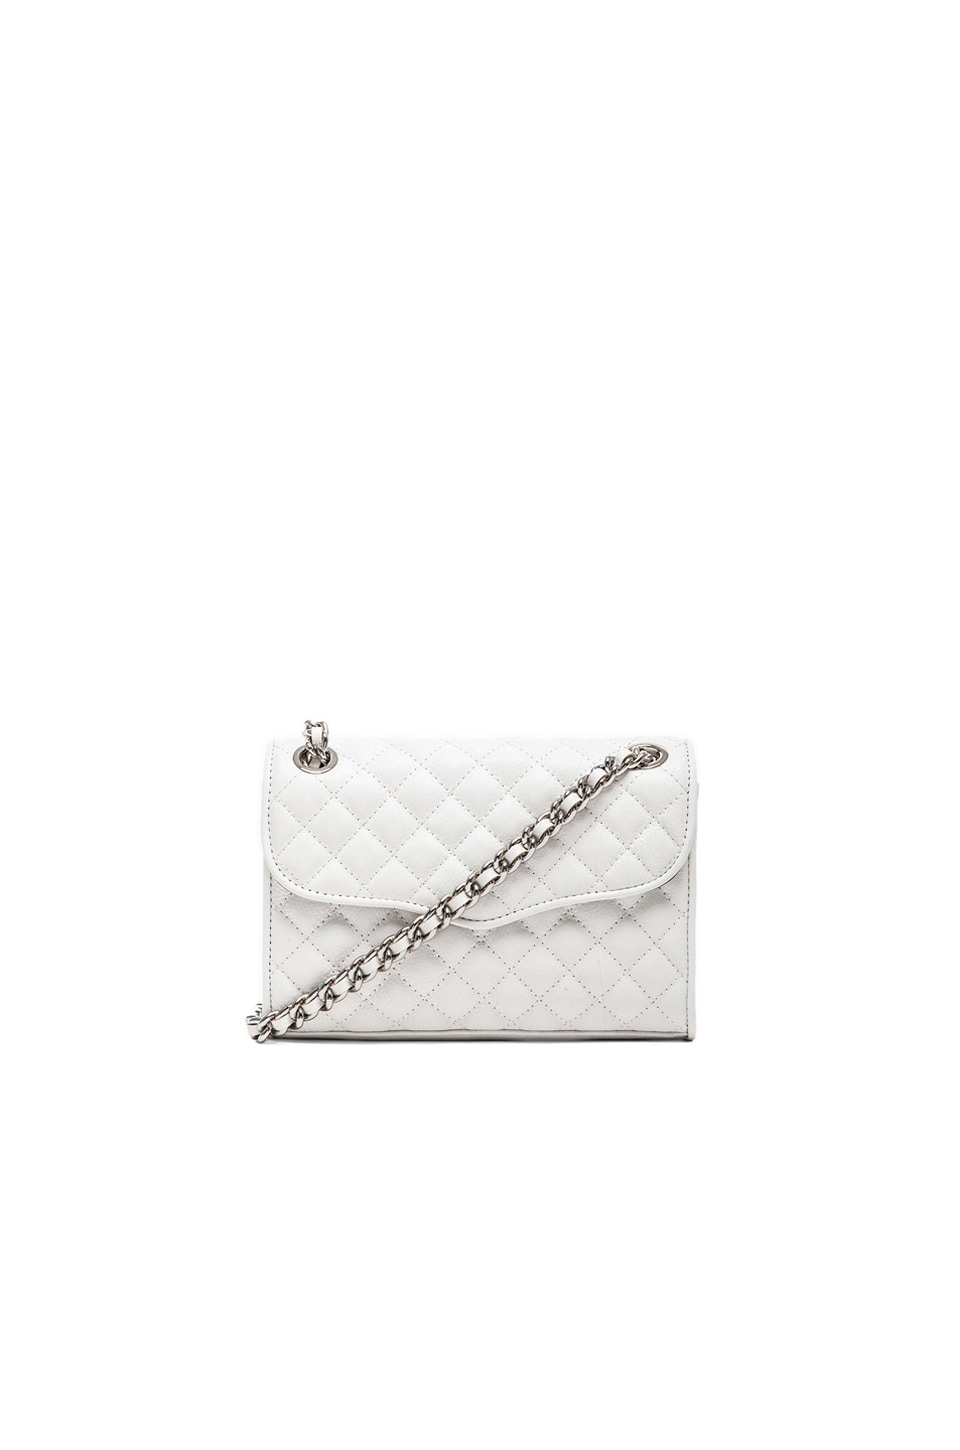 Rebecca Minkoff Quilted Mini Affair in White